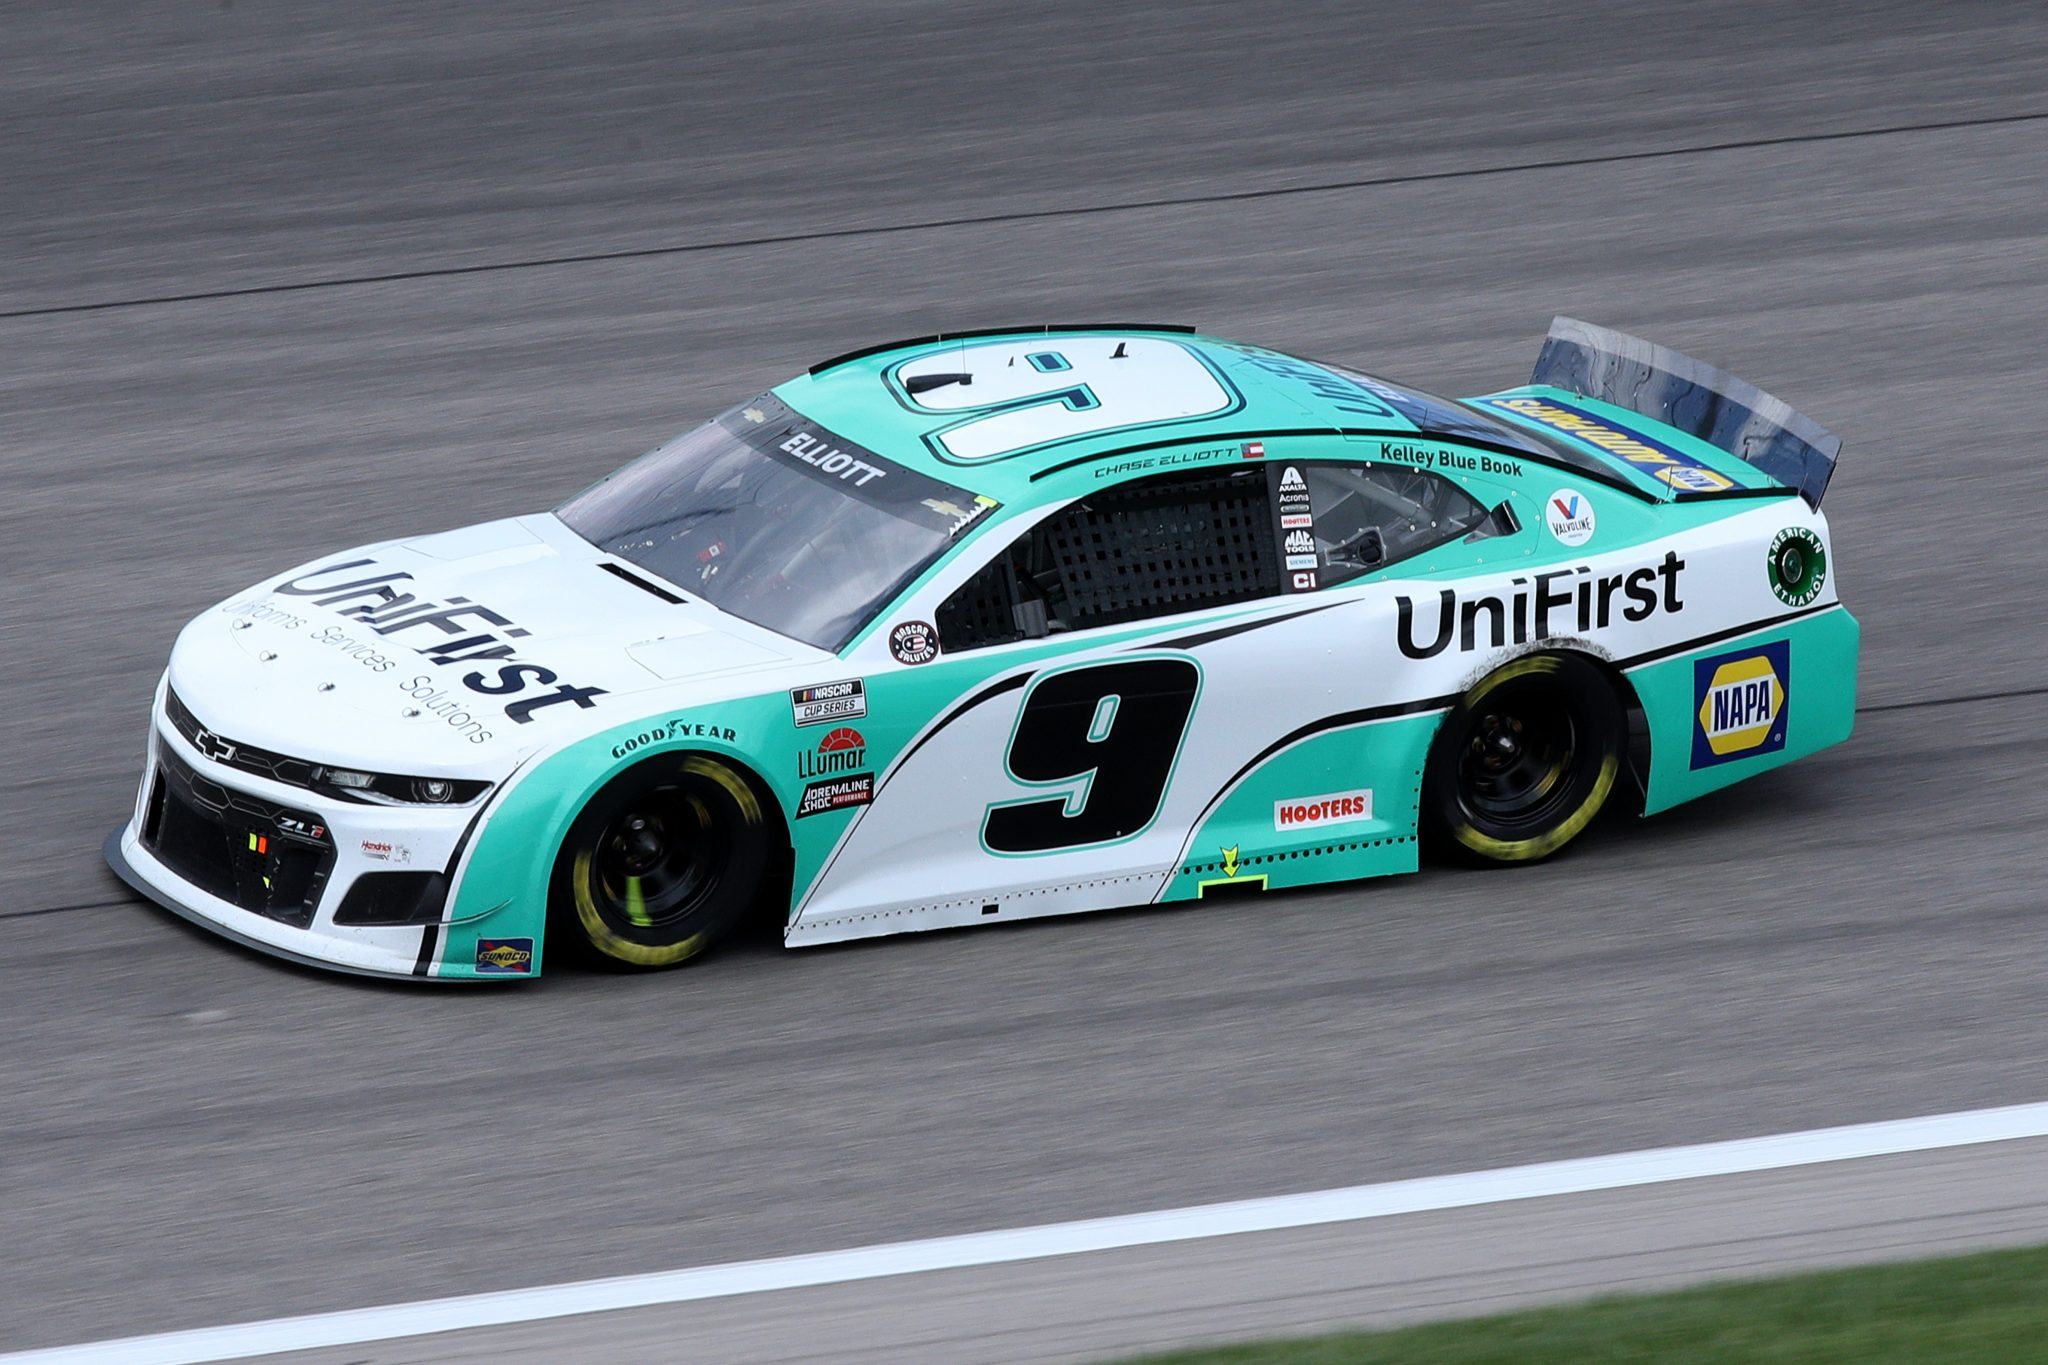 KANSAS CITY, KANSAS - MAY 02: Chase Elliott, driver of the #9 UniFirst Chevrolet, drives during the NASCAR Cup Series Buschy McBusch Race 400 at Kansas Speedway on May 02, 2021 in Kansas City, Kansas. (Photo by Sean Gardner/Getty Images) | Getty Images